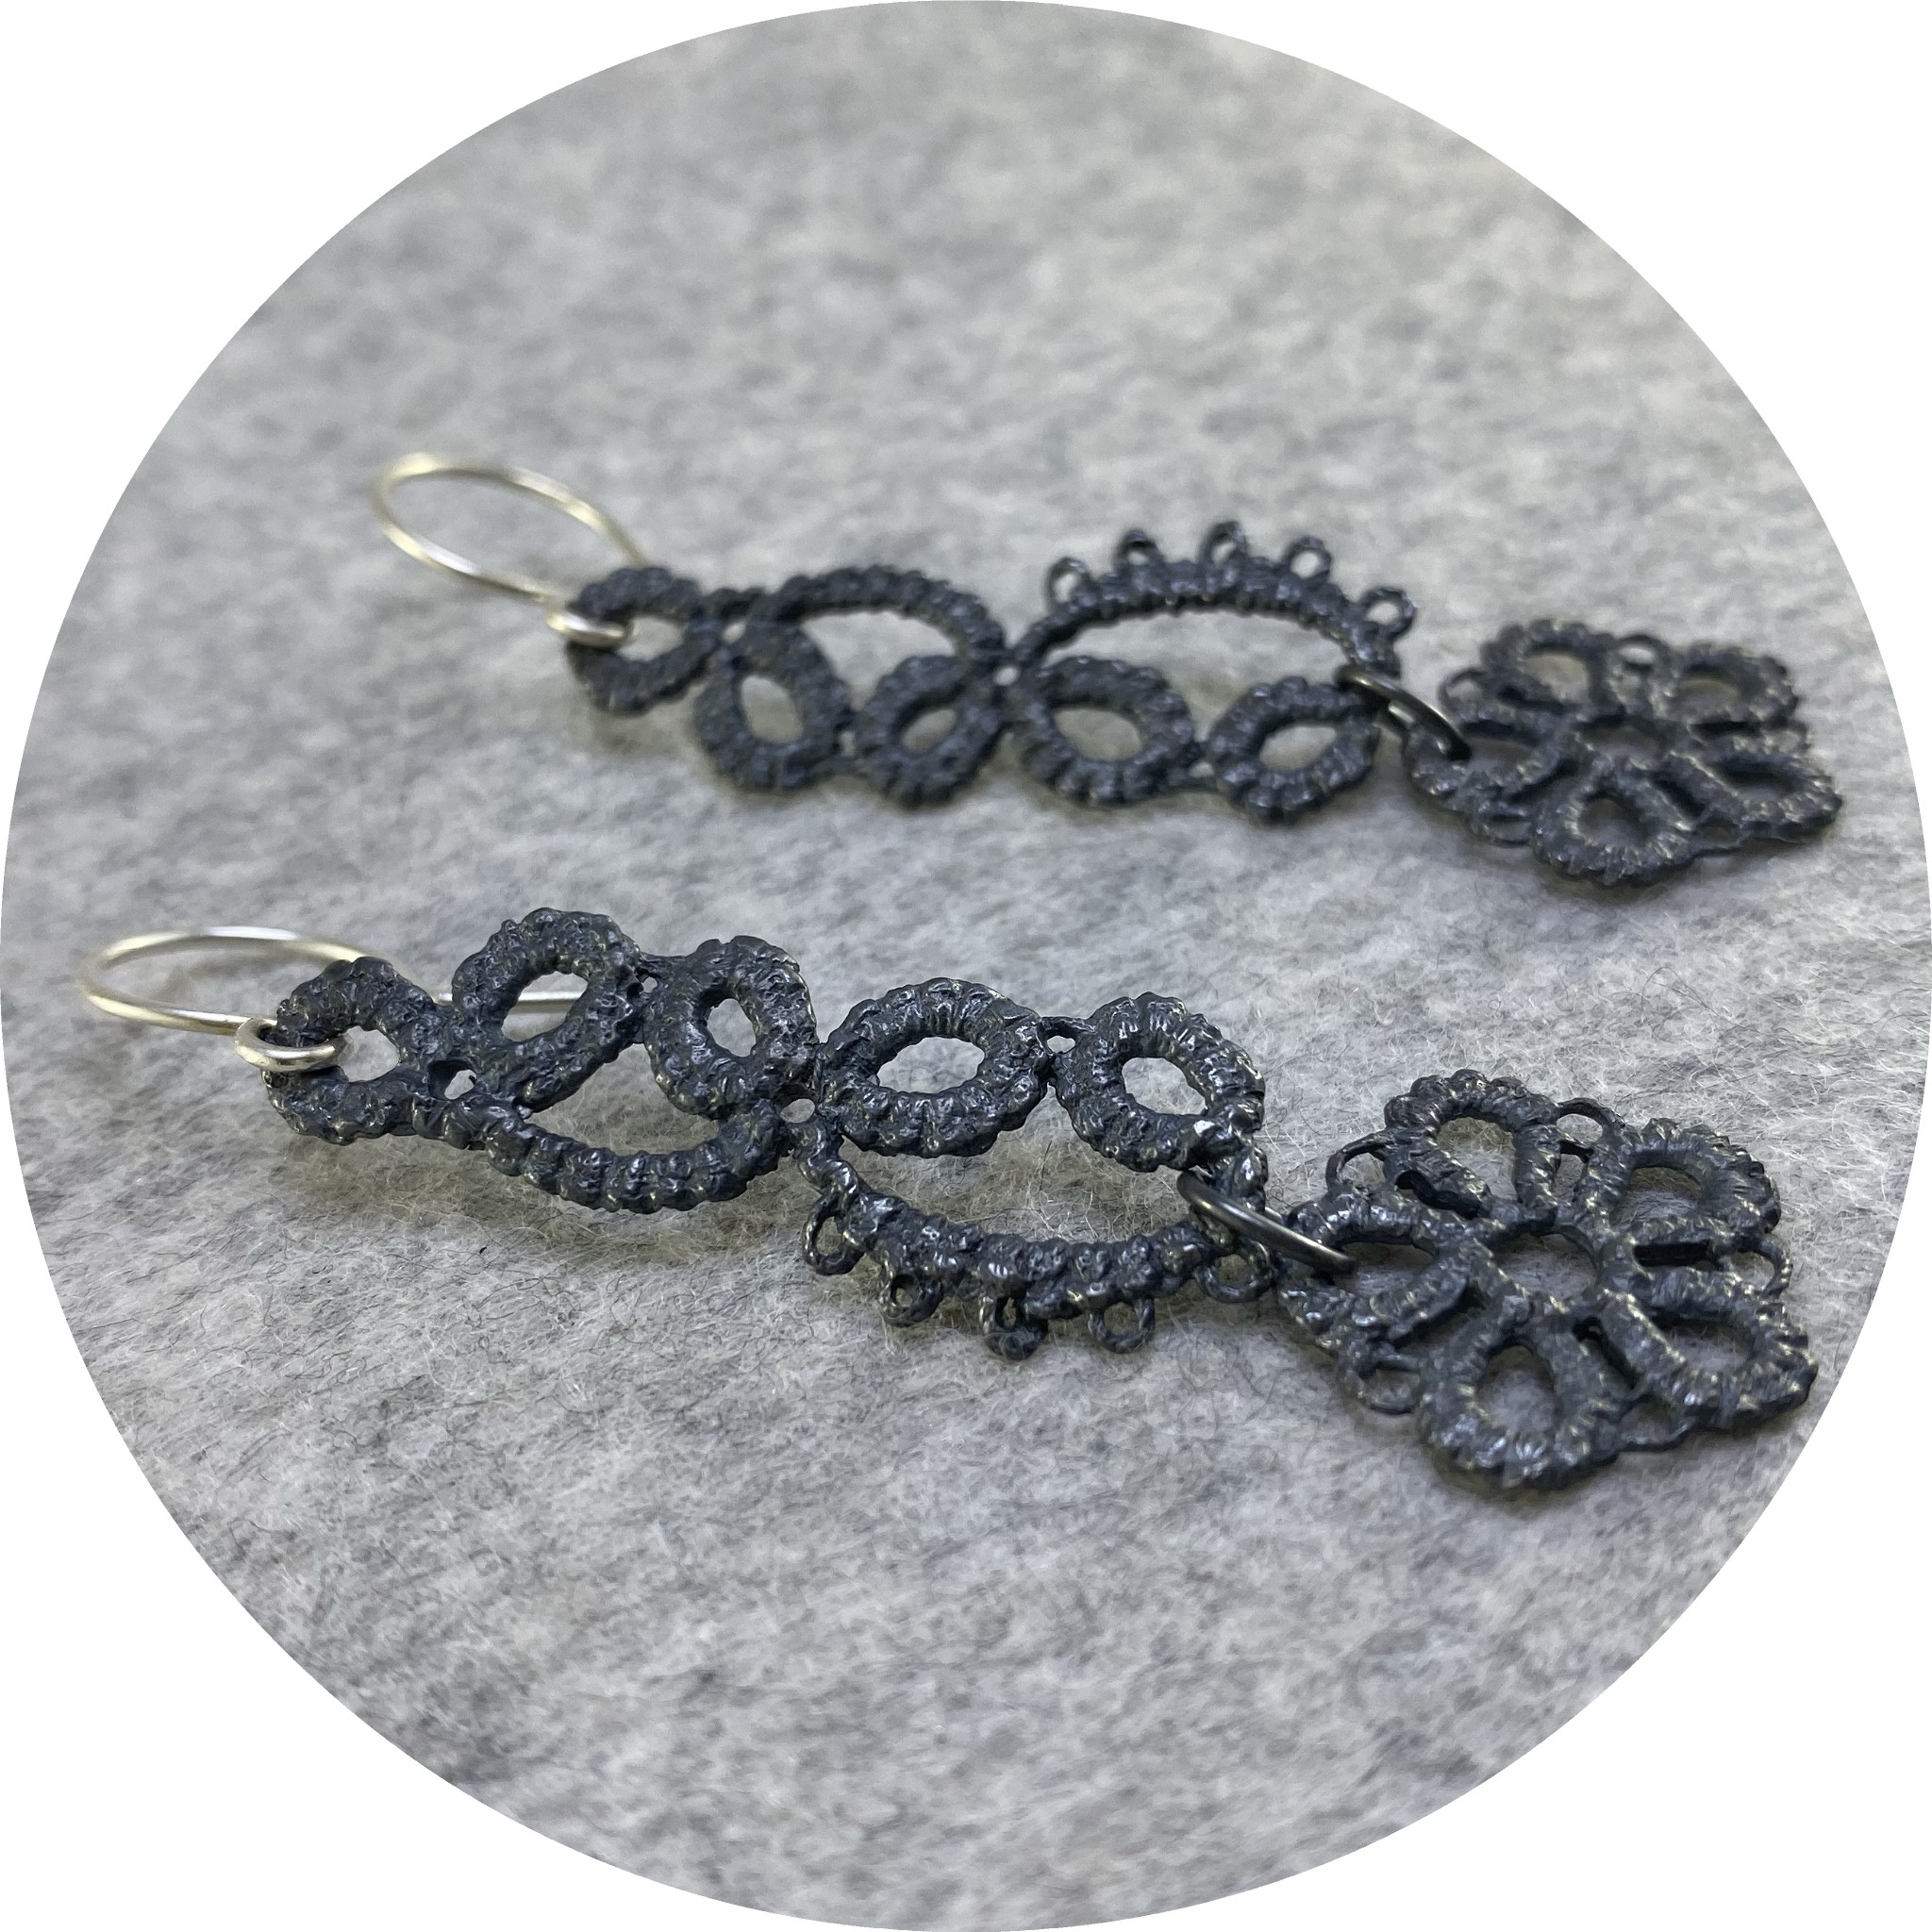 Pamela Camille- Tatted 5 petal flower and lace strip drop earrings. sterling silver.